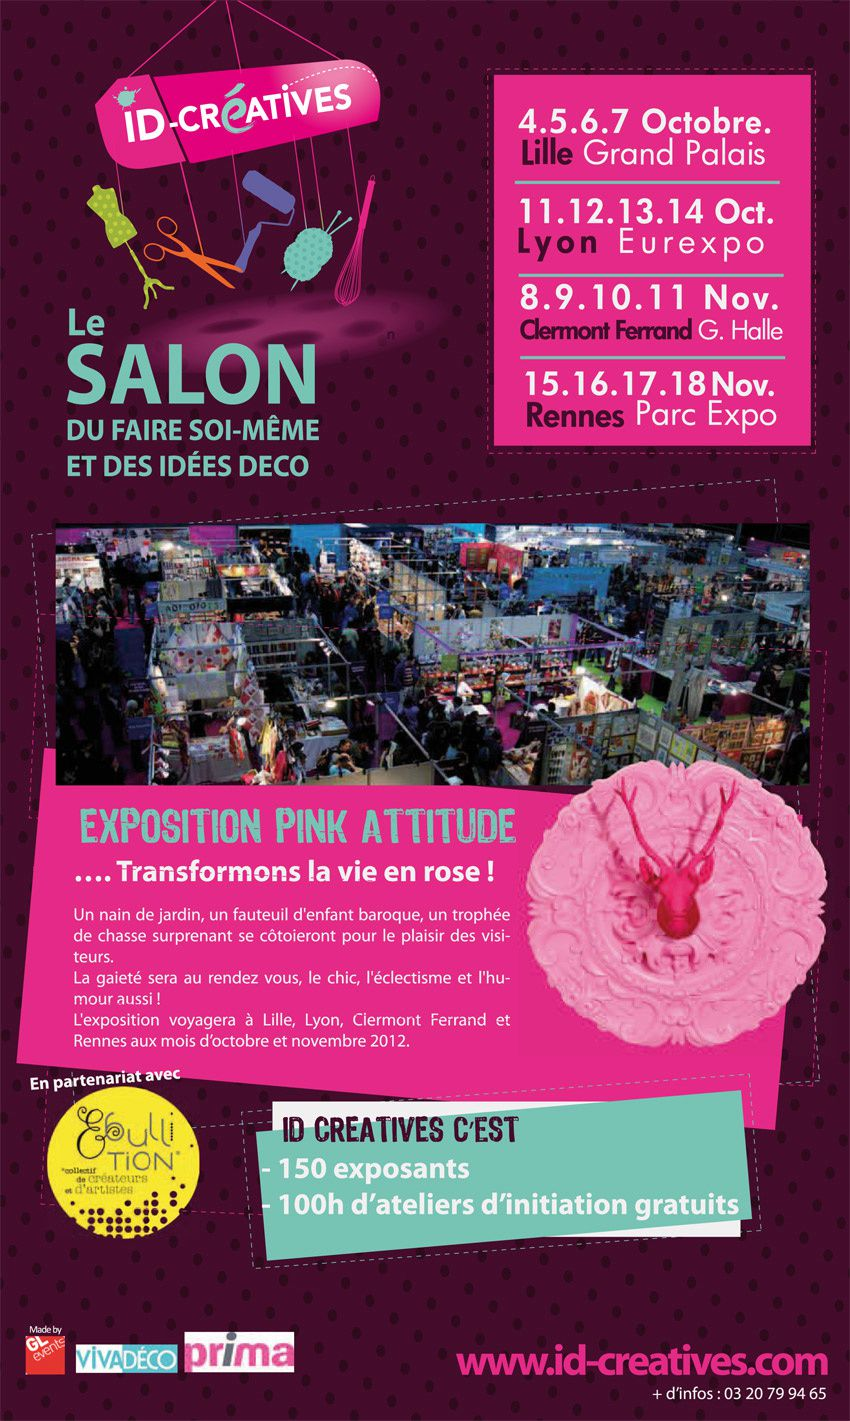 Salon id cr atives de lille octobre 2012 ideacoudre - Salon id creatives ...